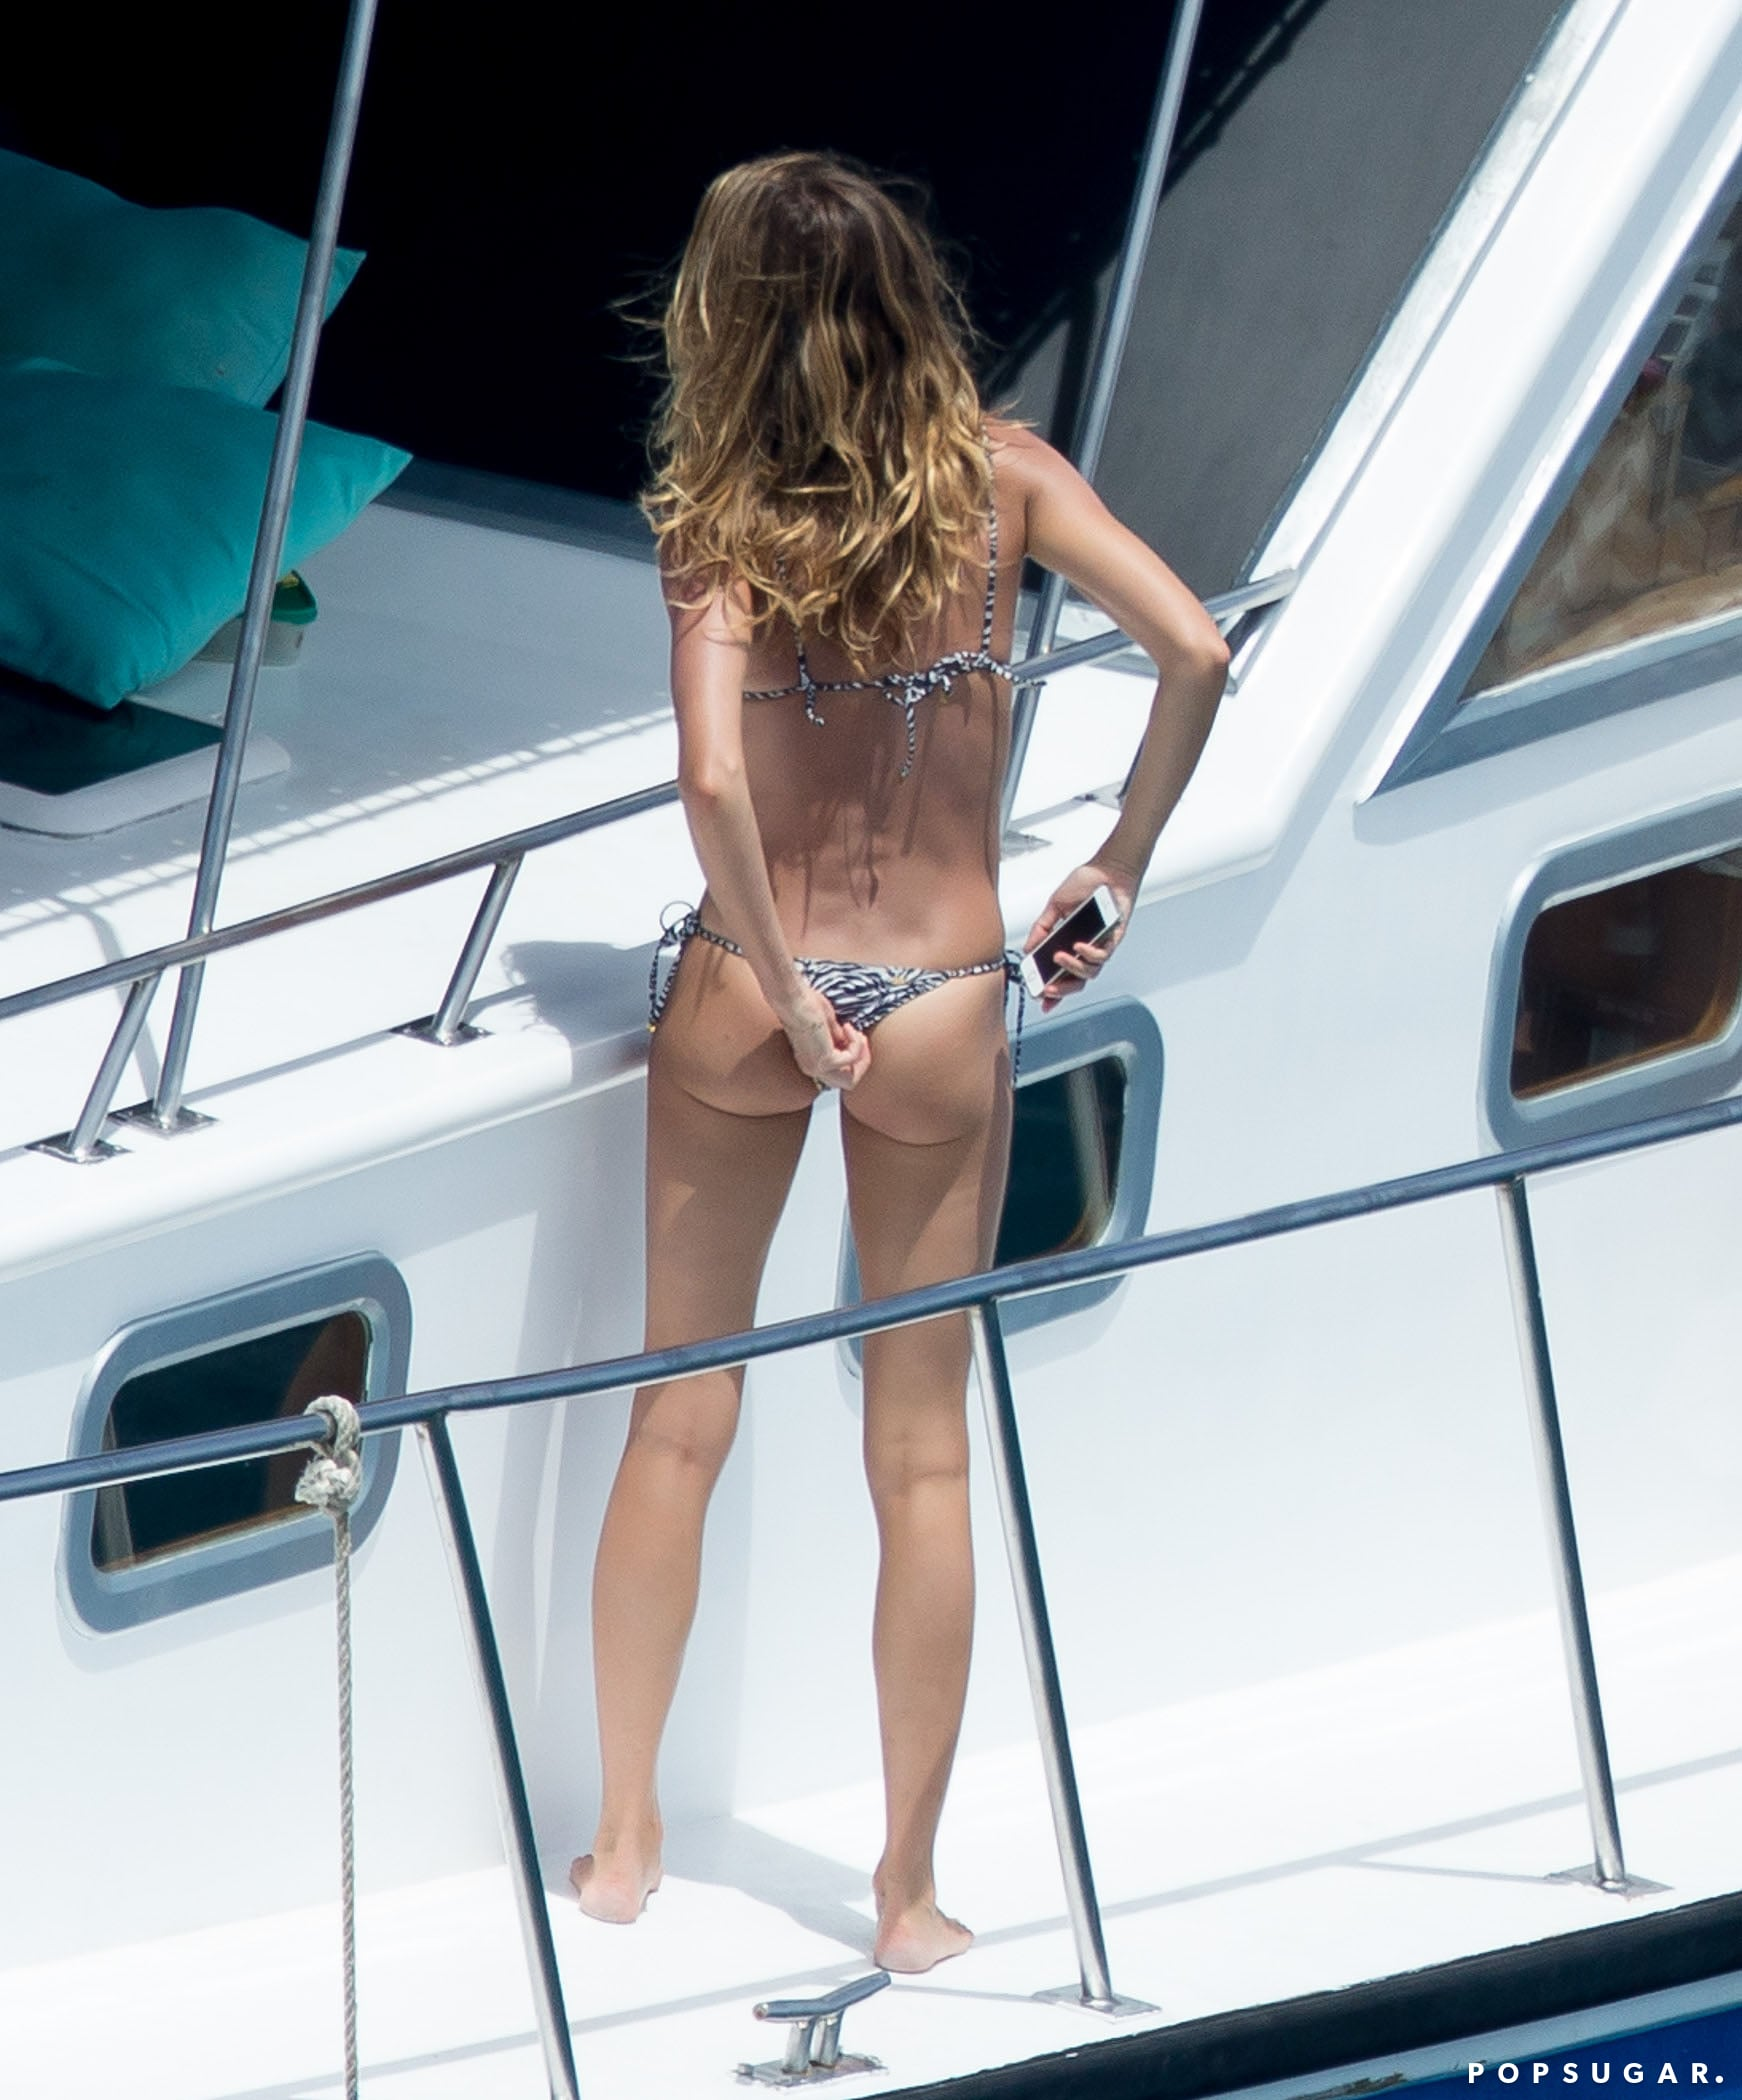 Is It Just Us, or Does Gisele's Bikini Body Only Get Hotter?